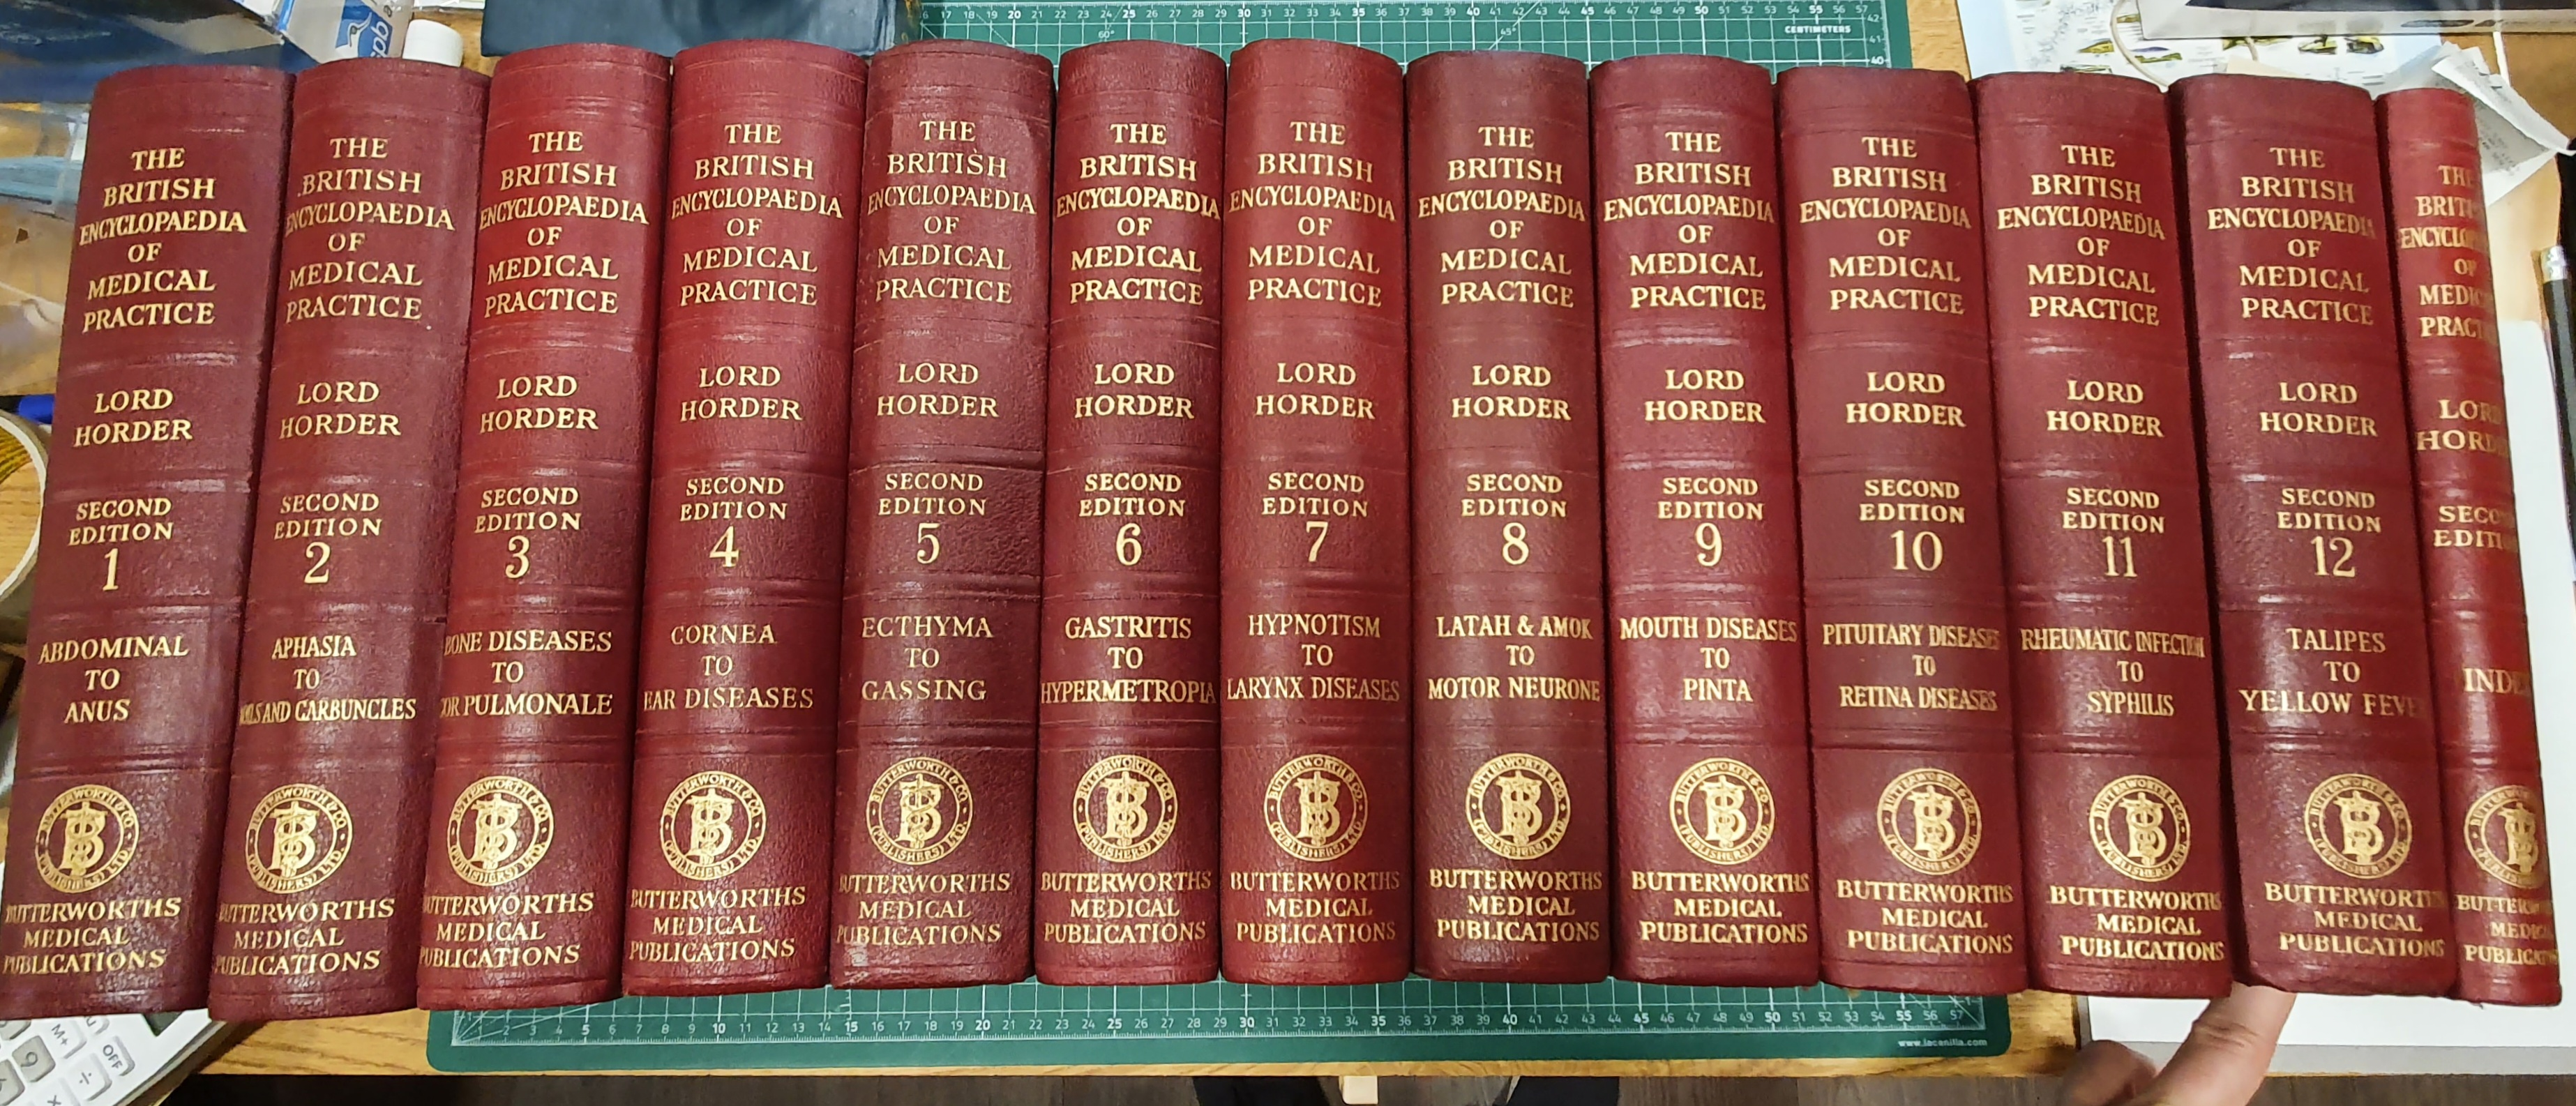 Image for The British Encyclopaedia of Medical Practice 12 Volumes plus Index Volume, Including Medical Progress Volumes 1951-1960 (23 Volumes in total)